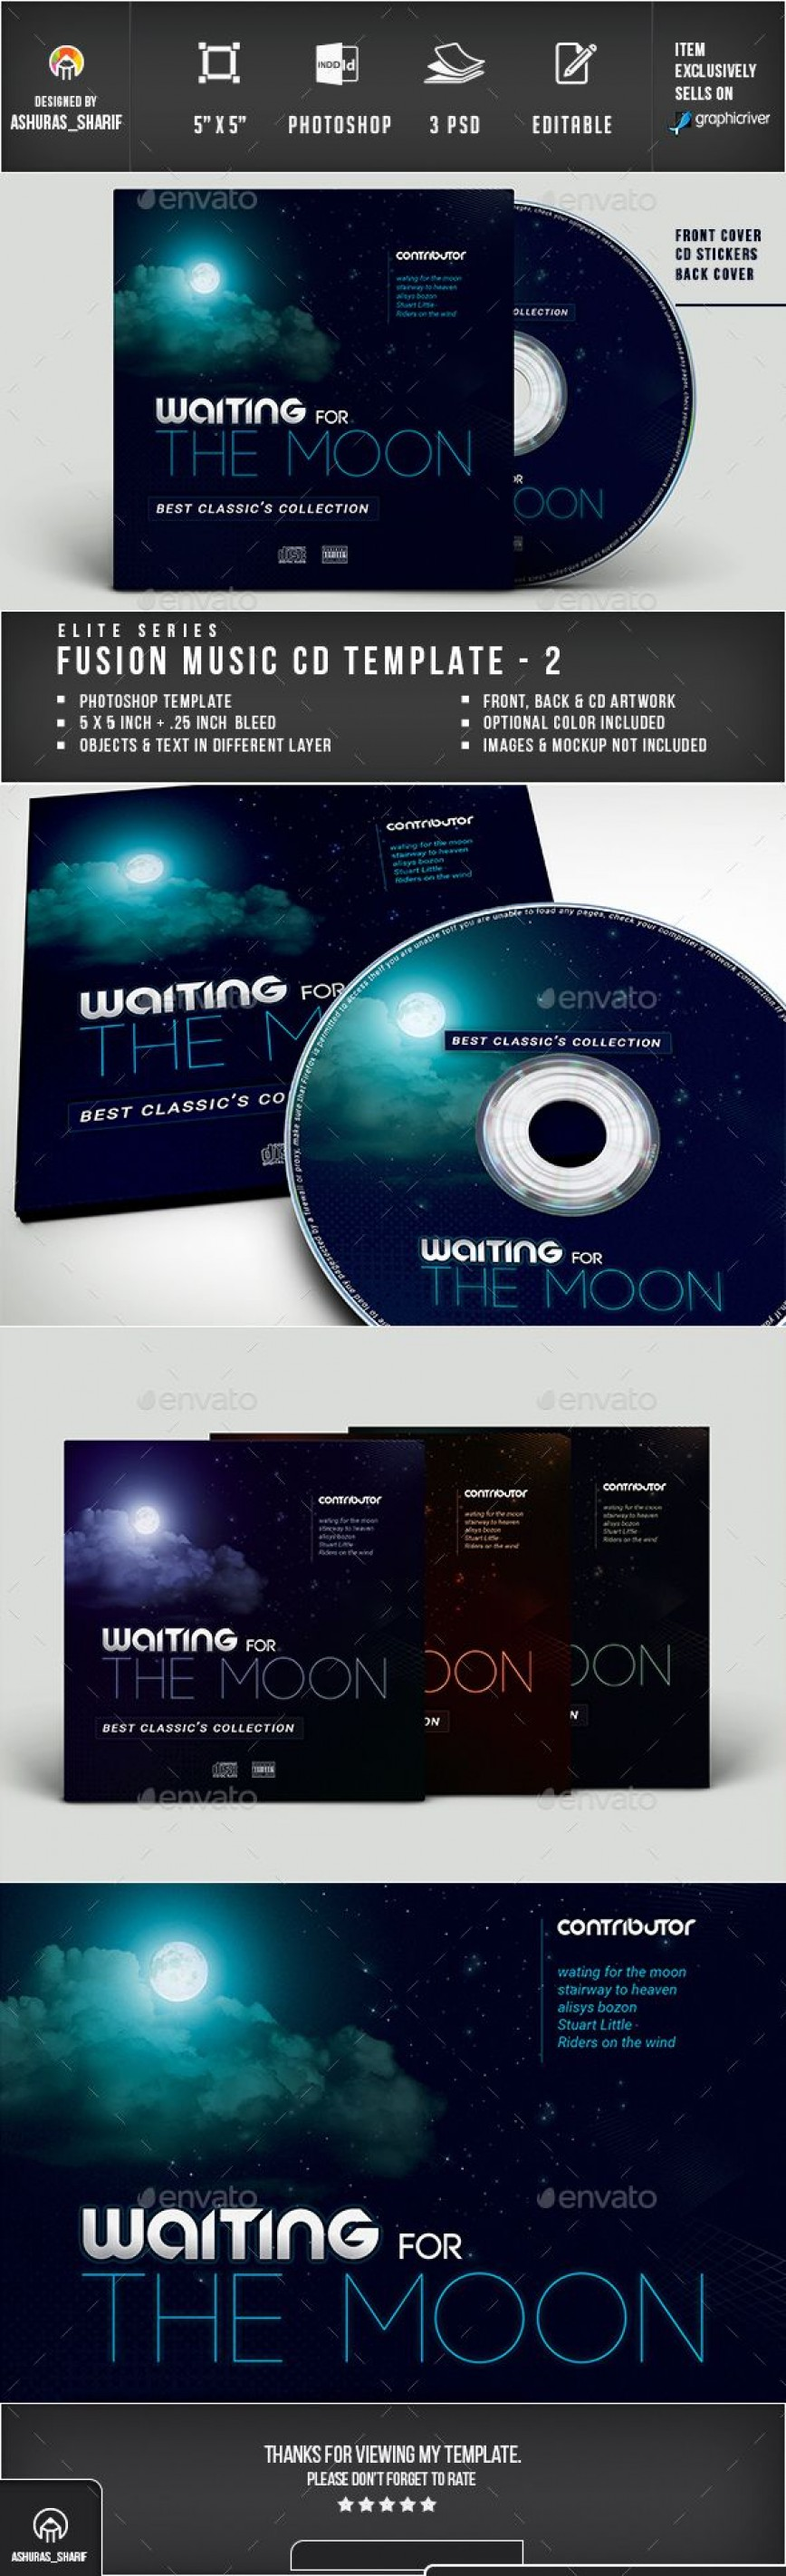 006 Impressive Cd Cover Design Template Photoshop Example  Label Psd Free868